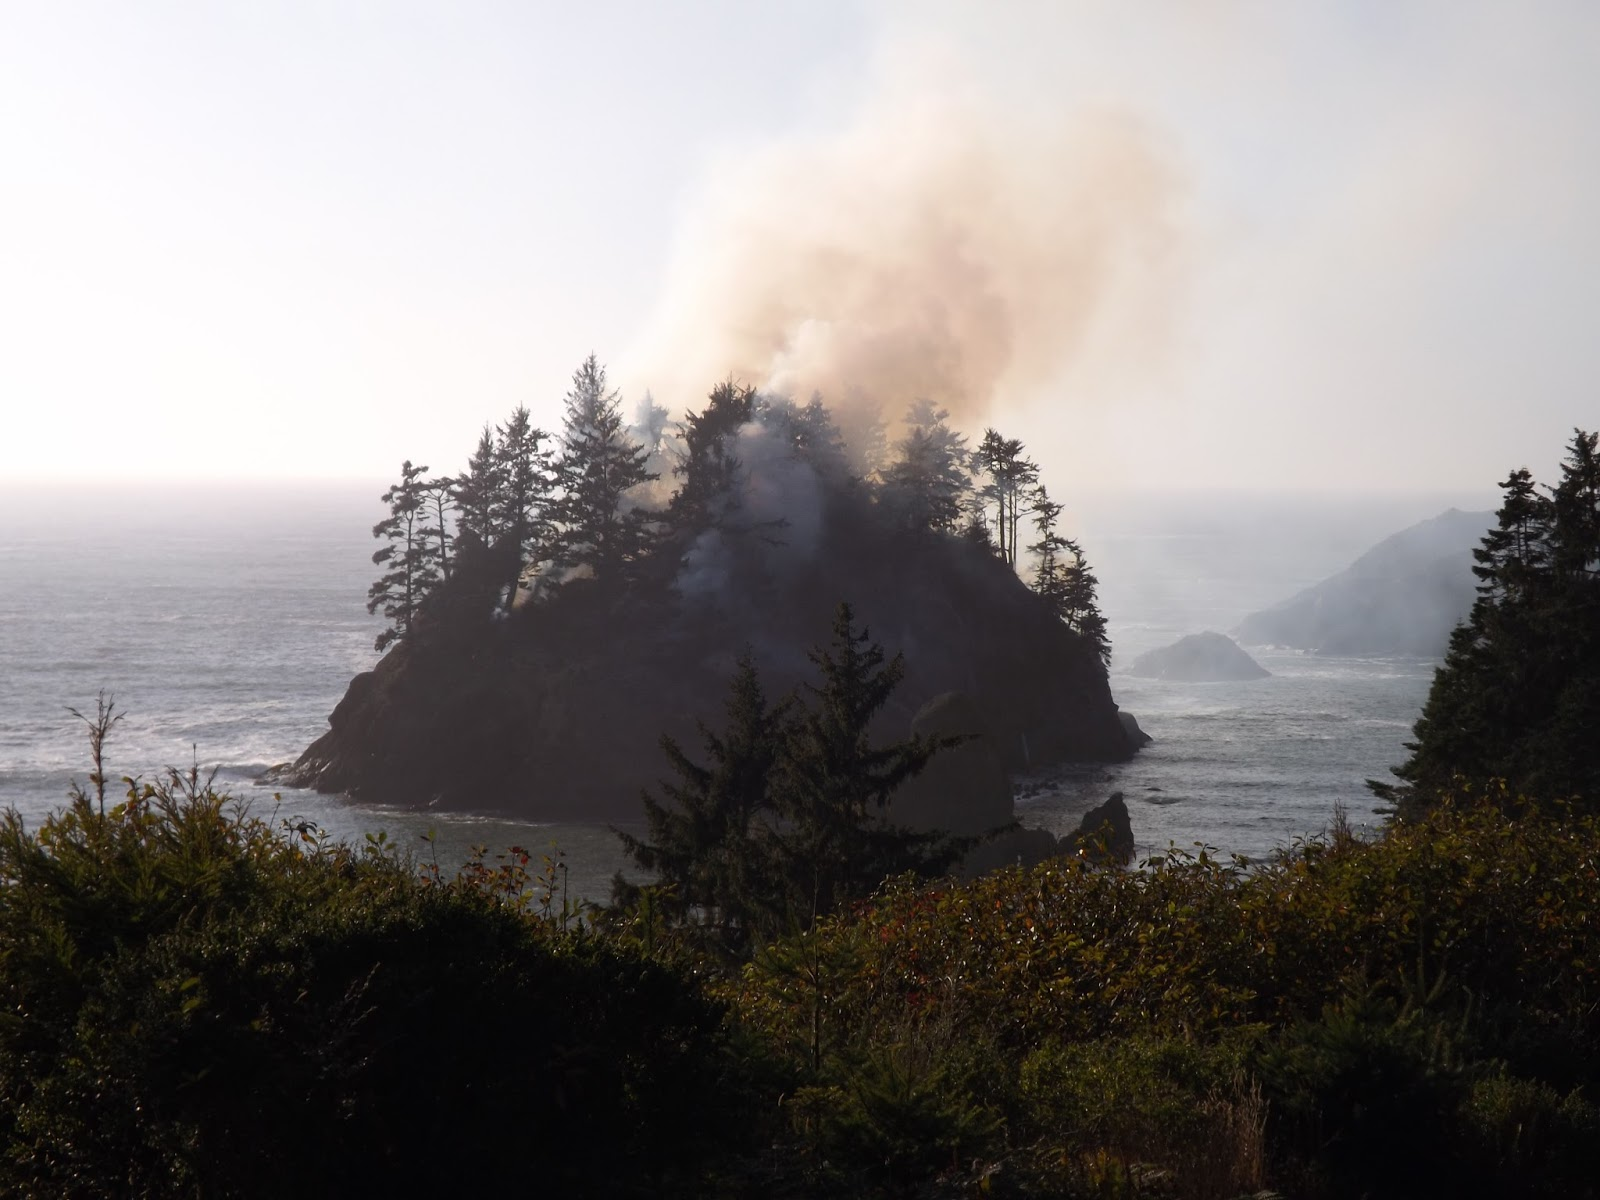 Tom Sebourn Blog: Pewetole Island Has Been On Fire For Days